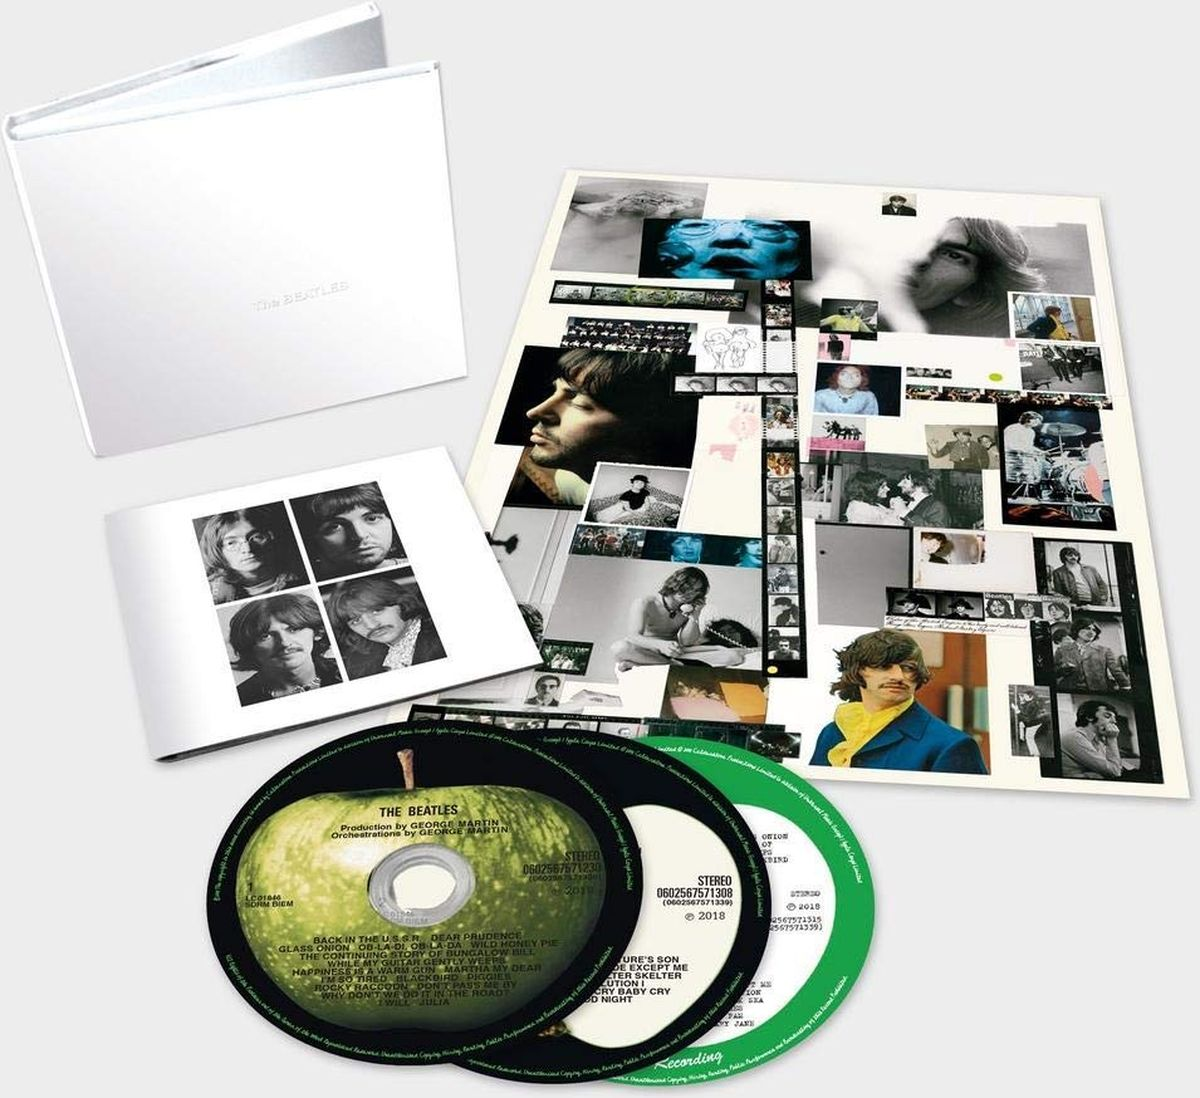 The Beatles The Beatles. White Album. Deluxe Edition (3 CD) koda ram page demo